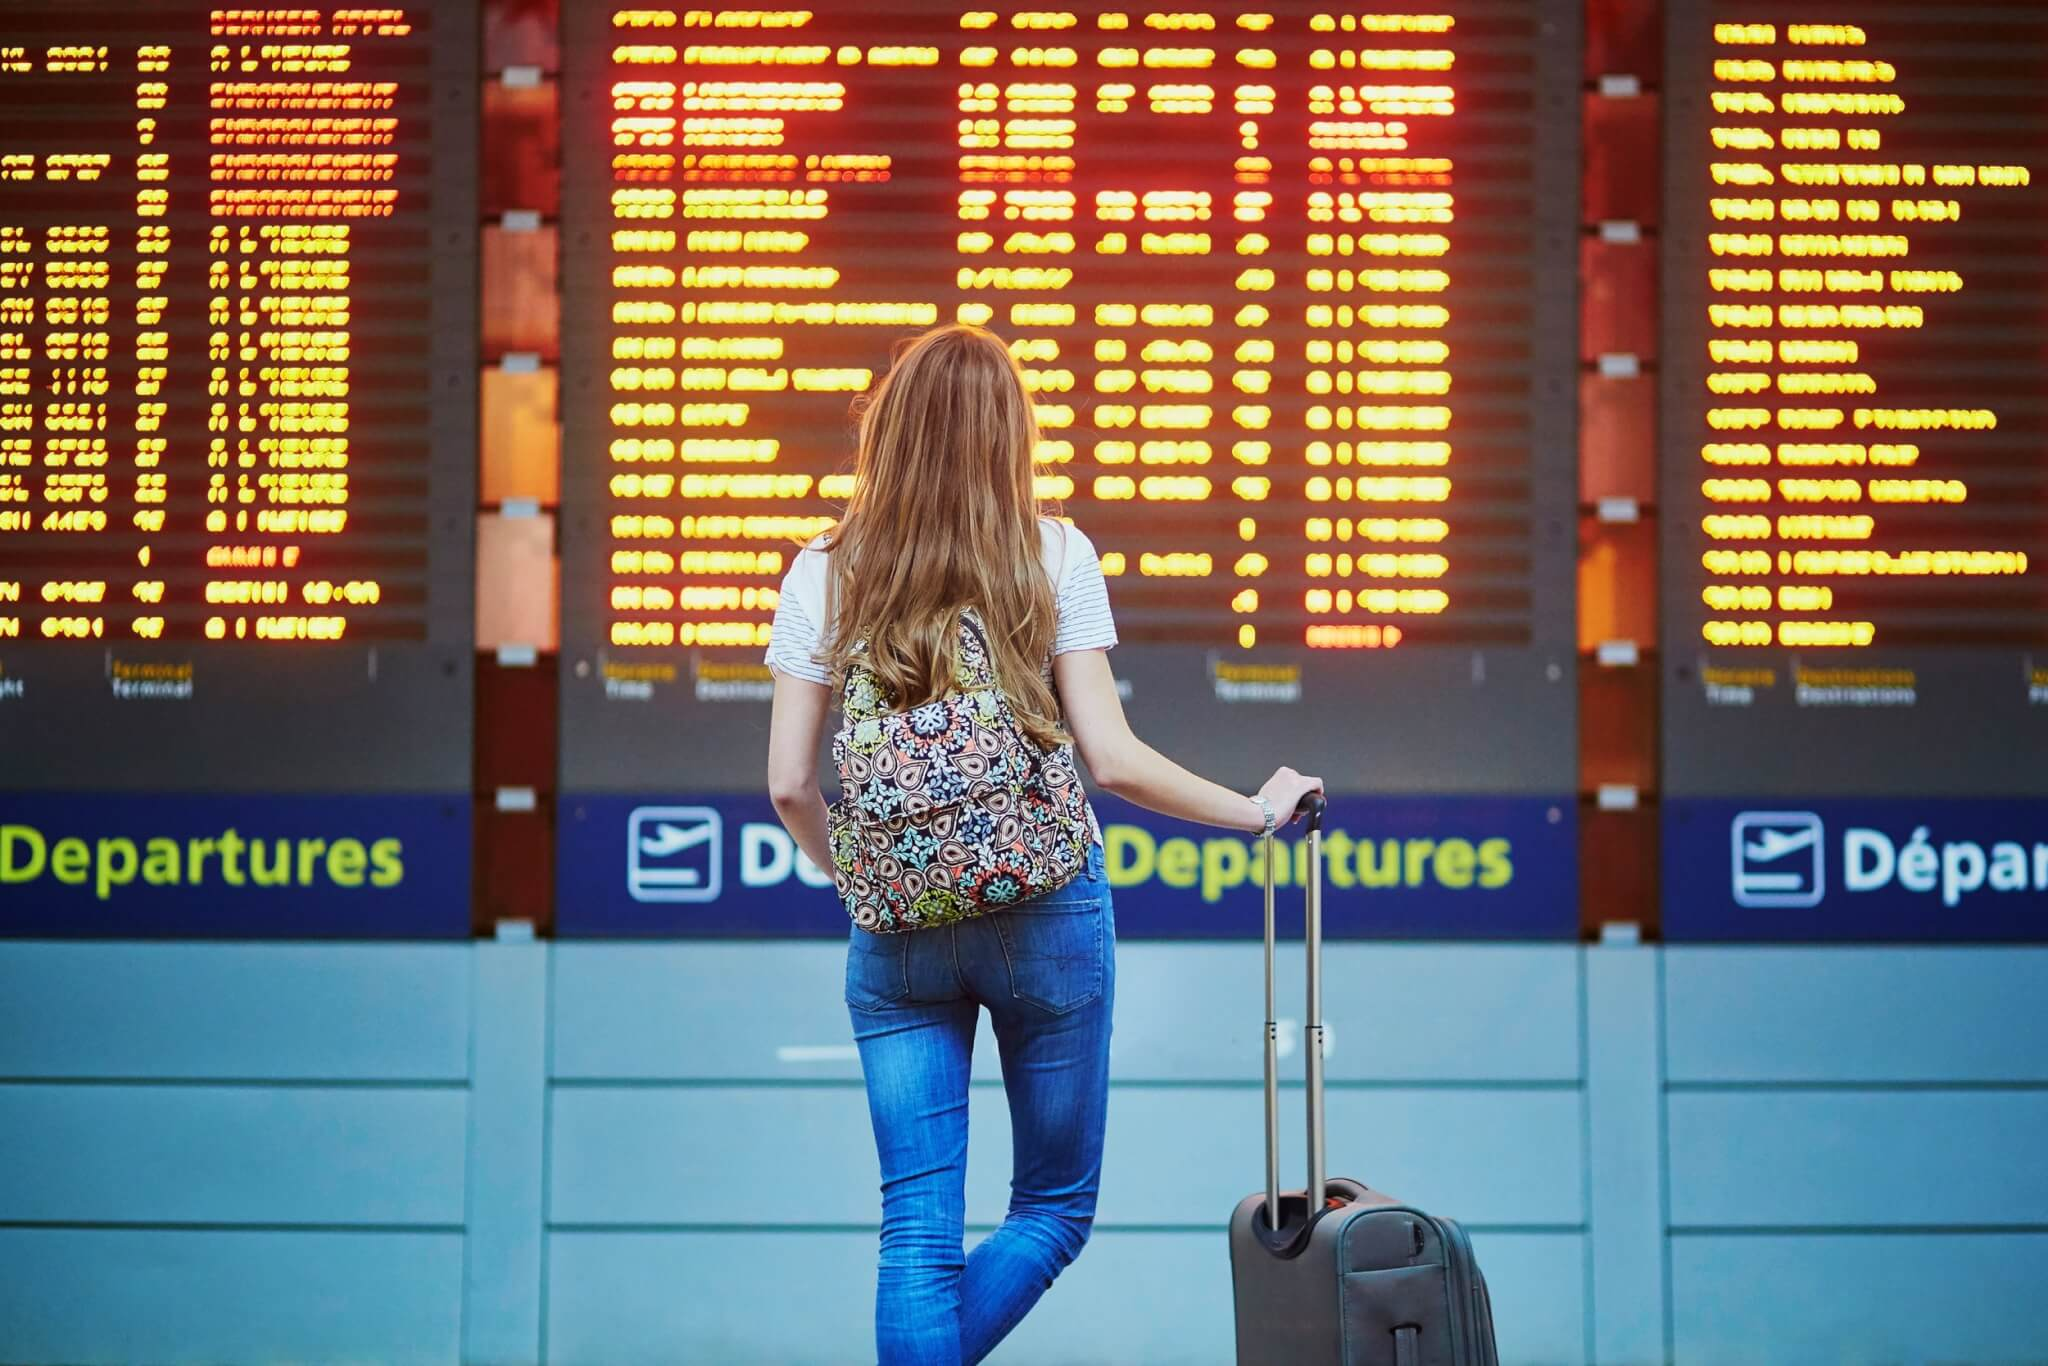 Most delayed airports of summer in UK, EU and US revealed